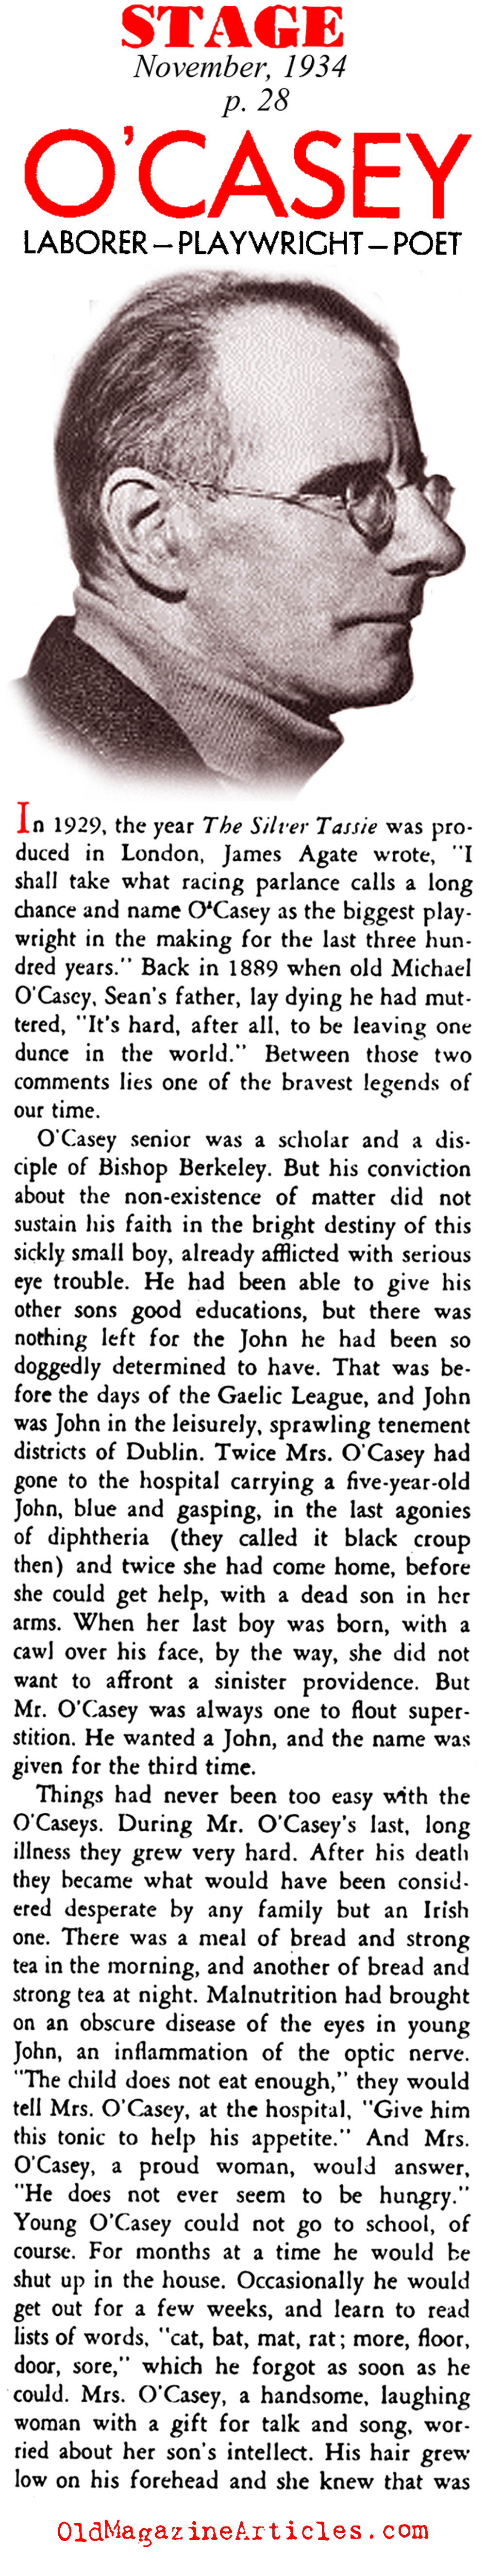 Sean O'Casey: Laborer, Playwright, Poet (Stage Magazine, 1934)